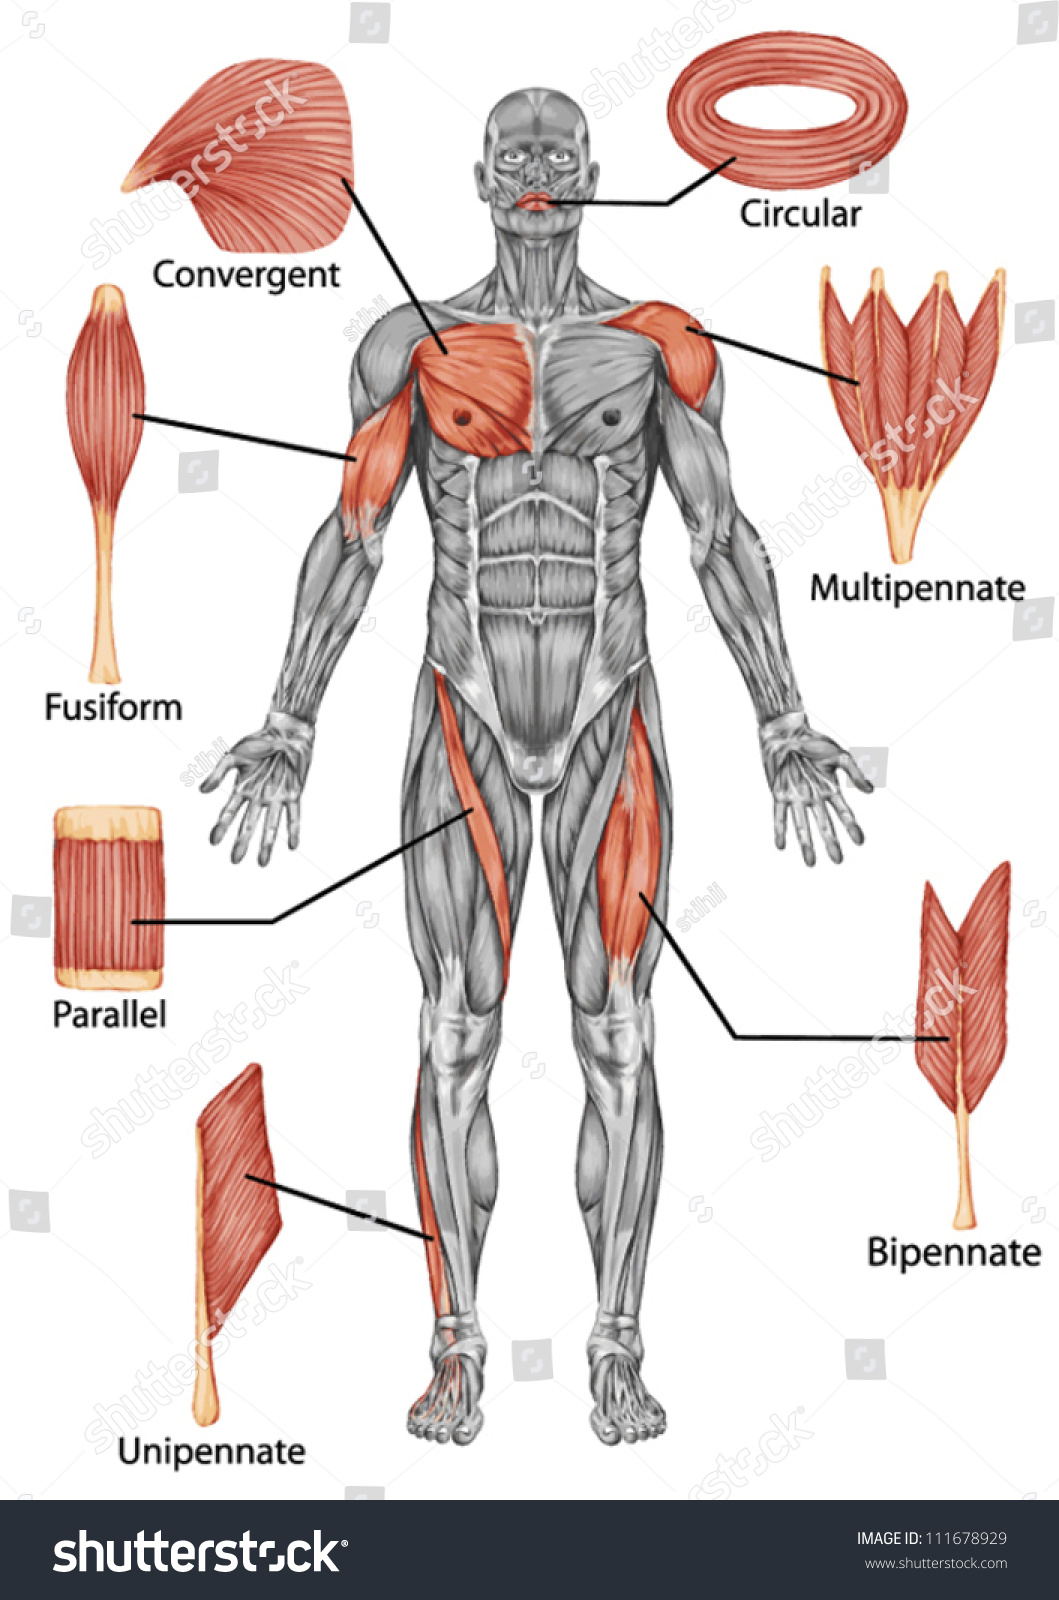 Anatomy Male Muscular System Posterior View Stock Vector